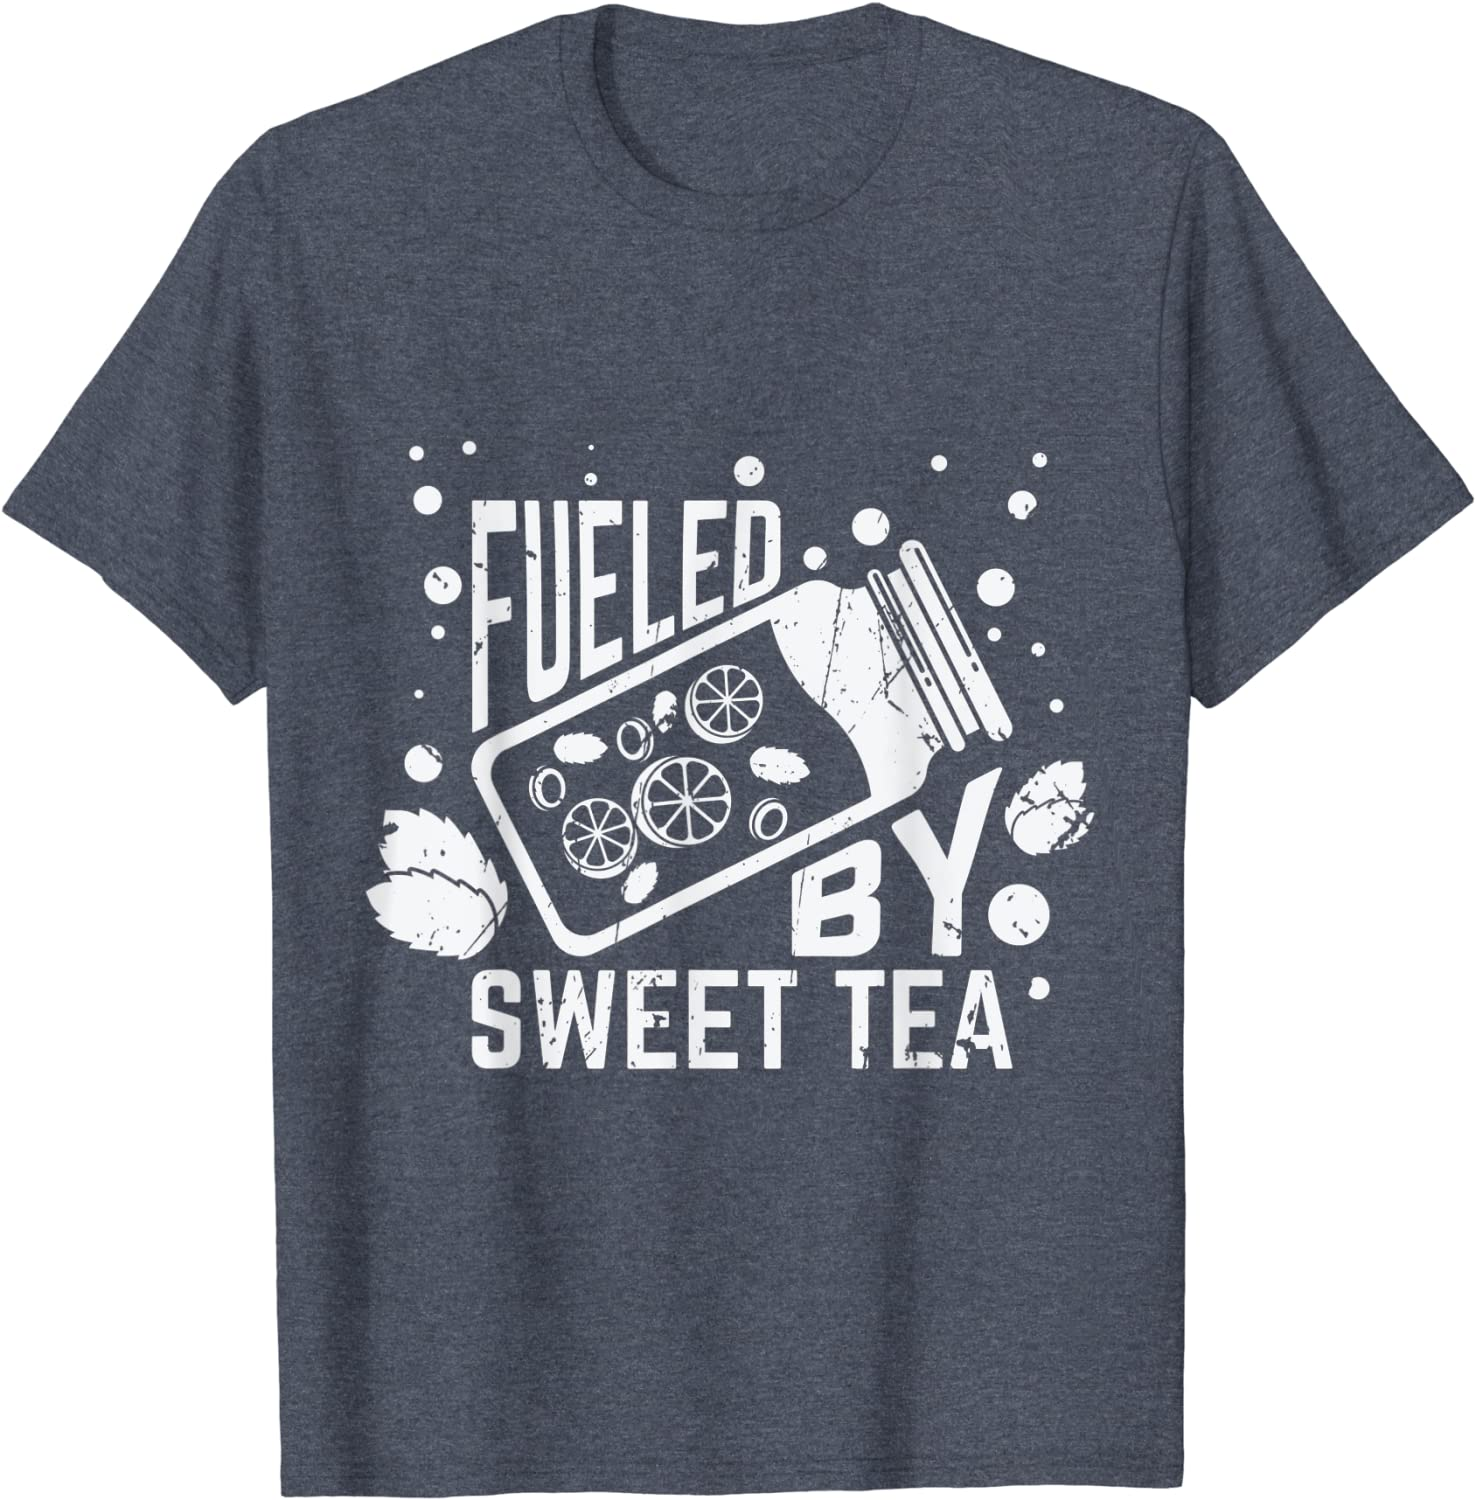 Fueled By Sweet Tea I Funny Southern SC Gift Sweatshirt